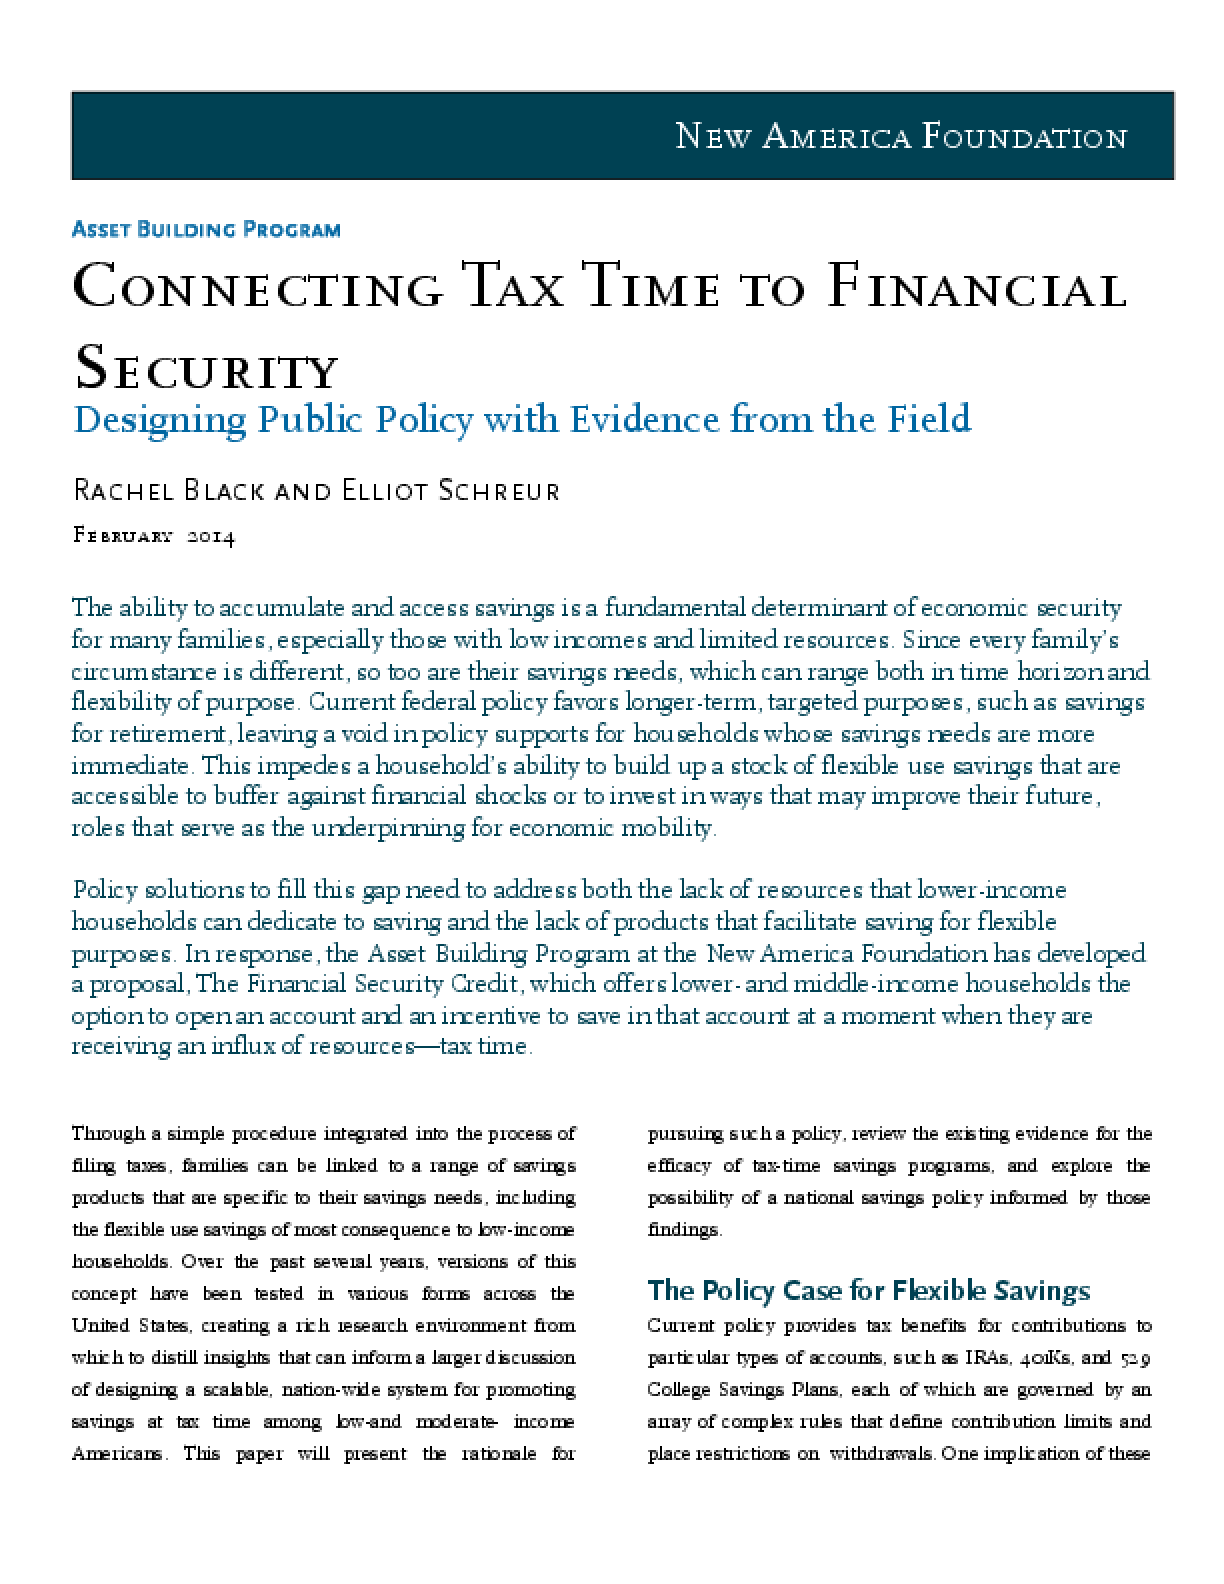 Connecting Tax Time to Financial Security: Designing Public Policy with Evidence from the Field